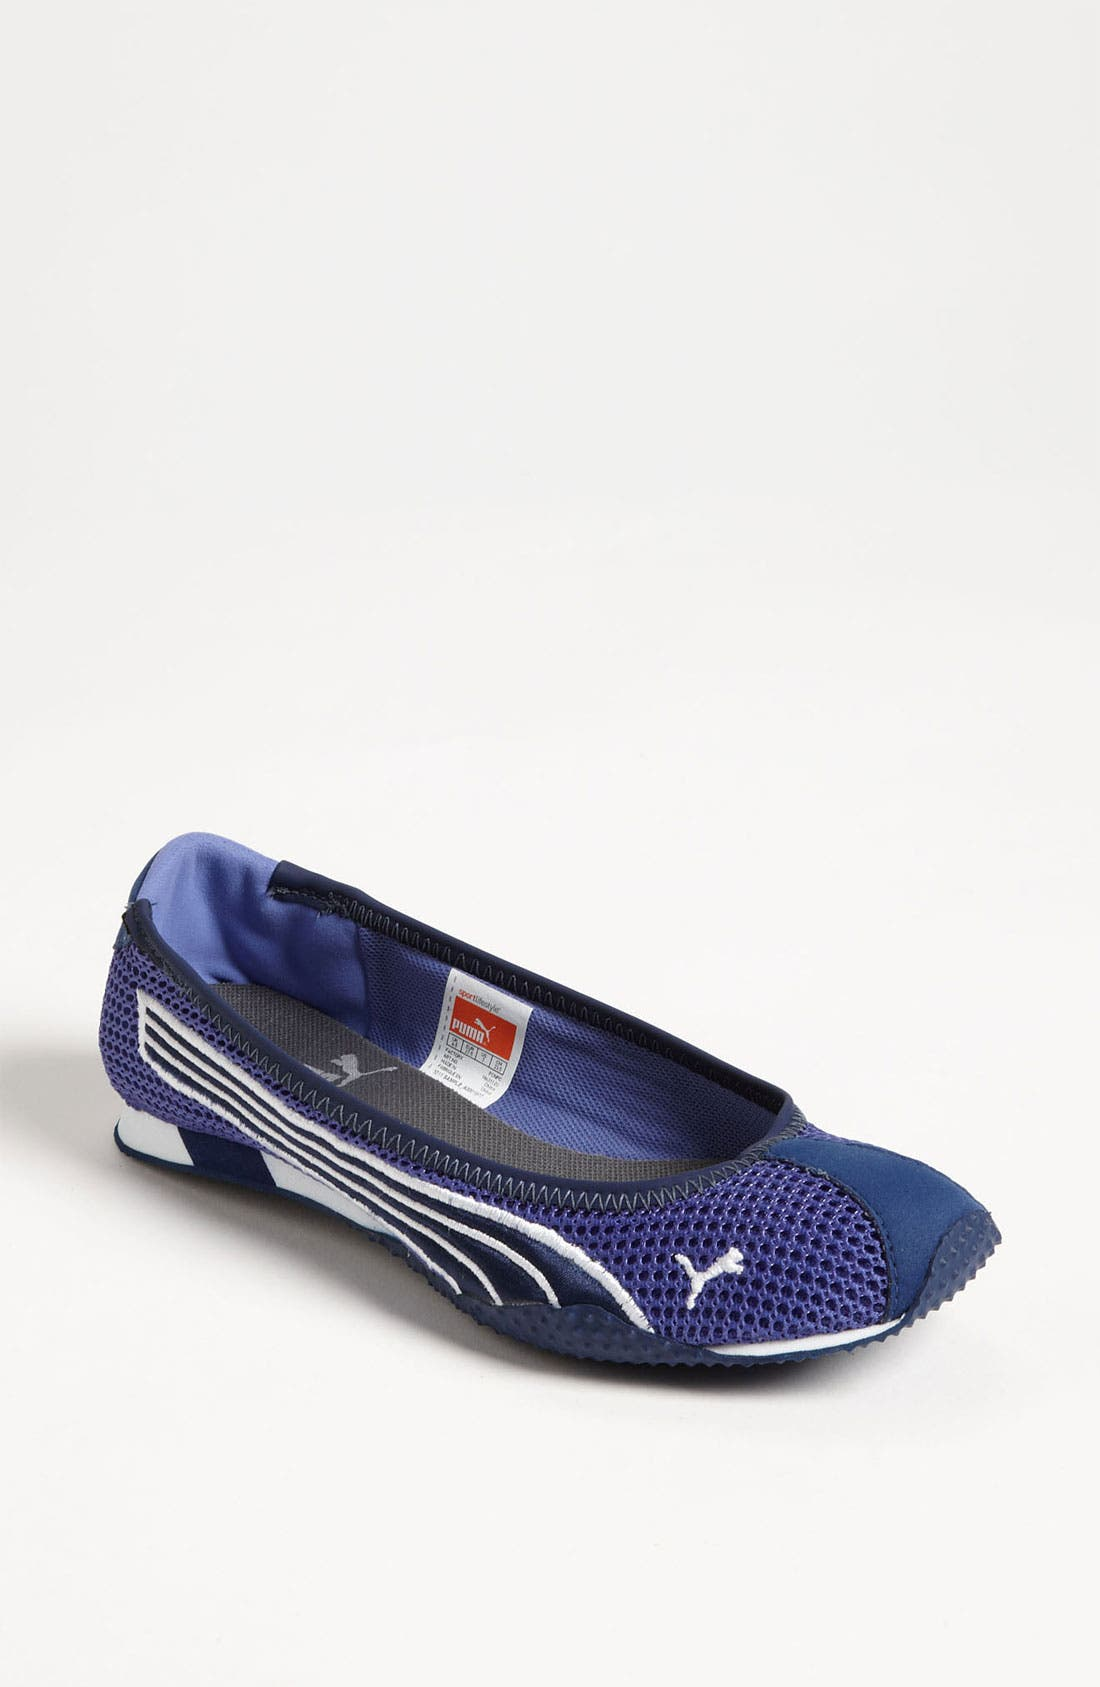 Alternate Image 1 Selected - Puma 'H Street' Athletic Shoe (Women)